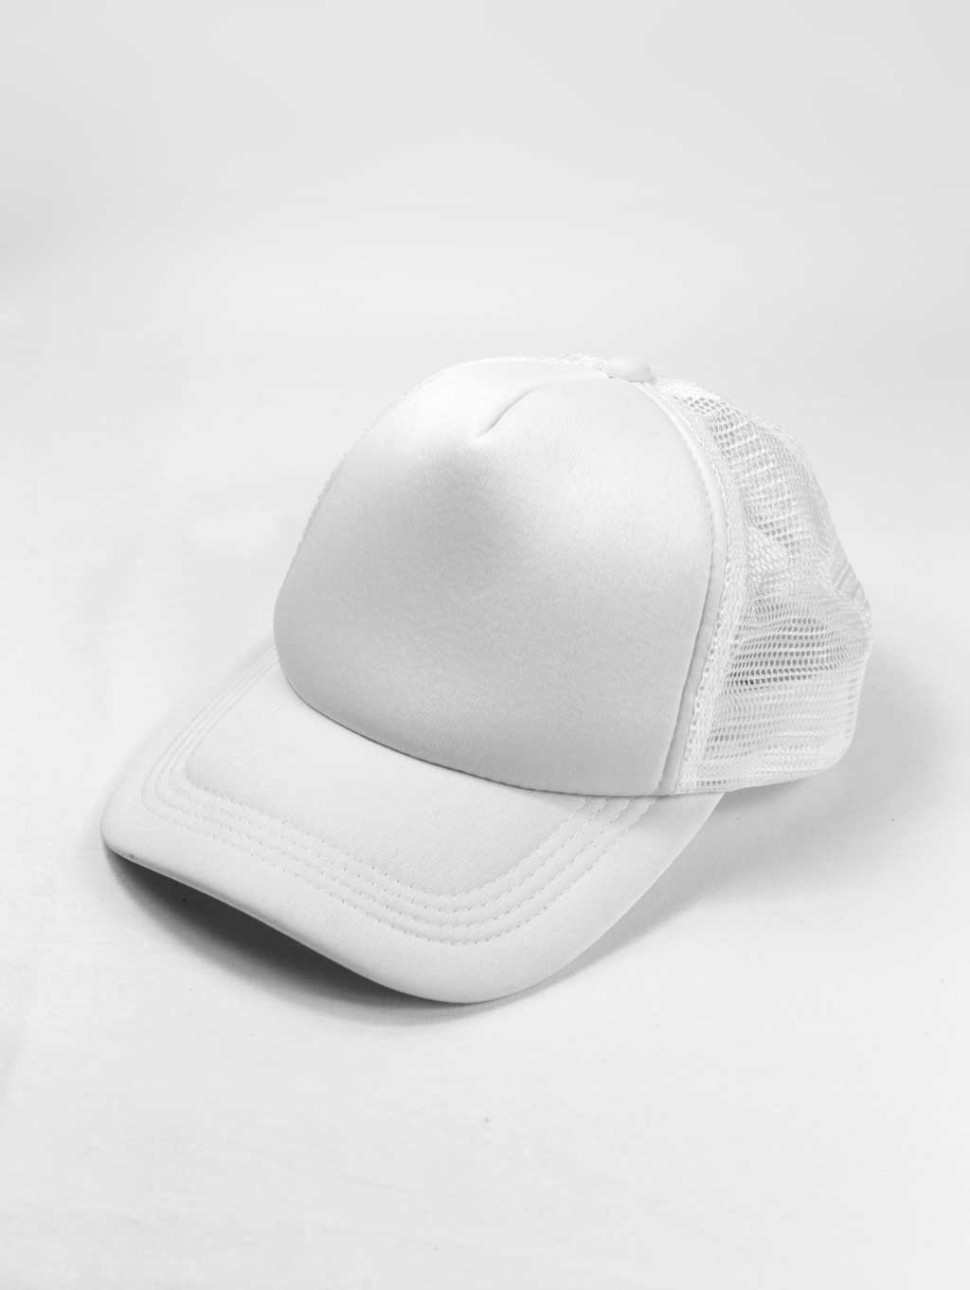 A plain, white trucker hat sits in front of a white background and is one of the best caps for men.